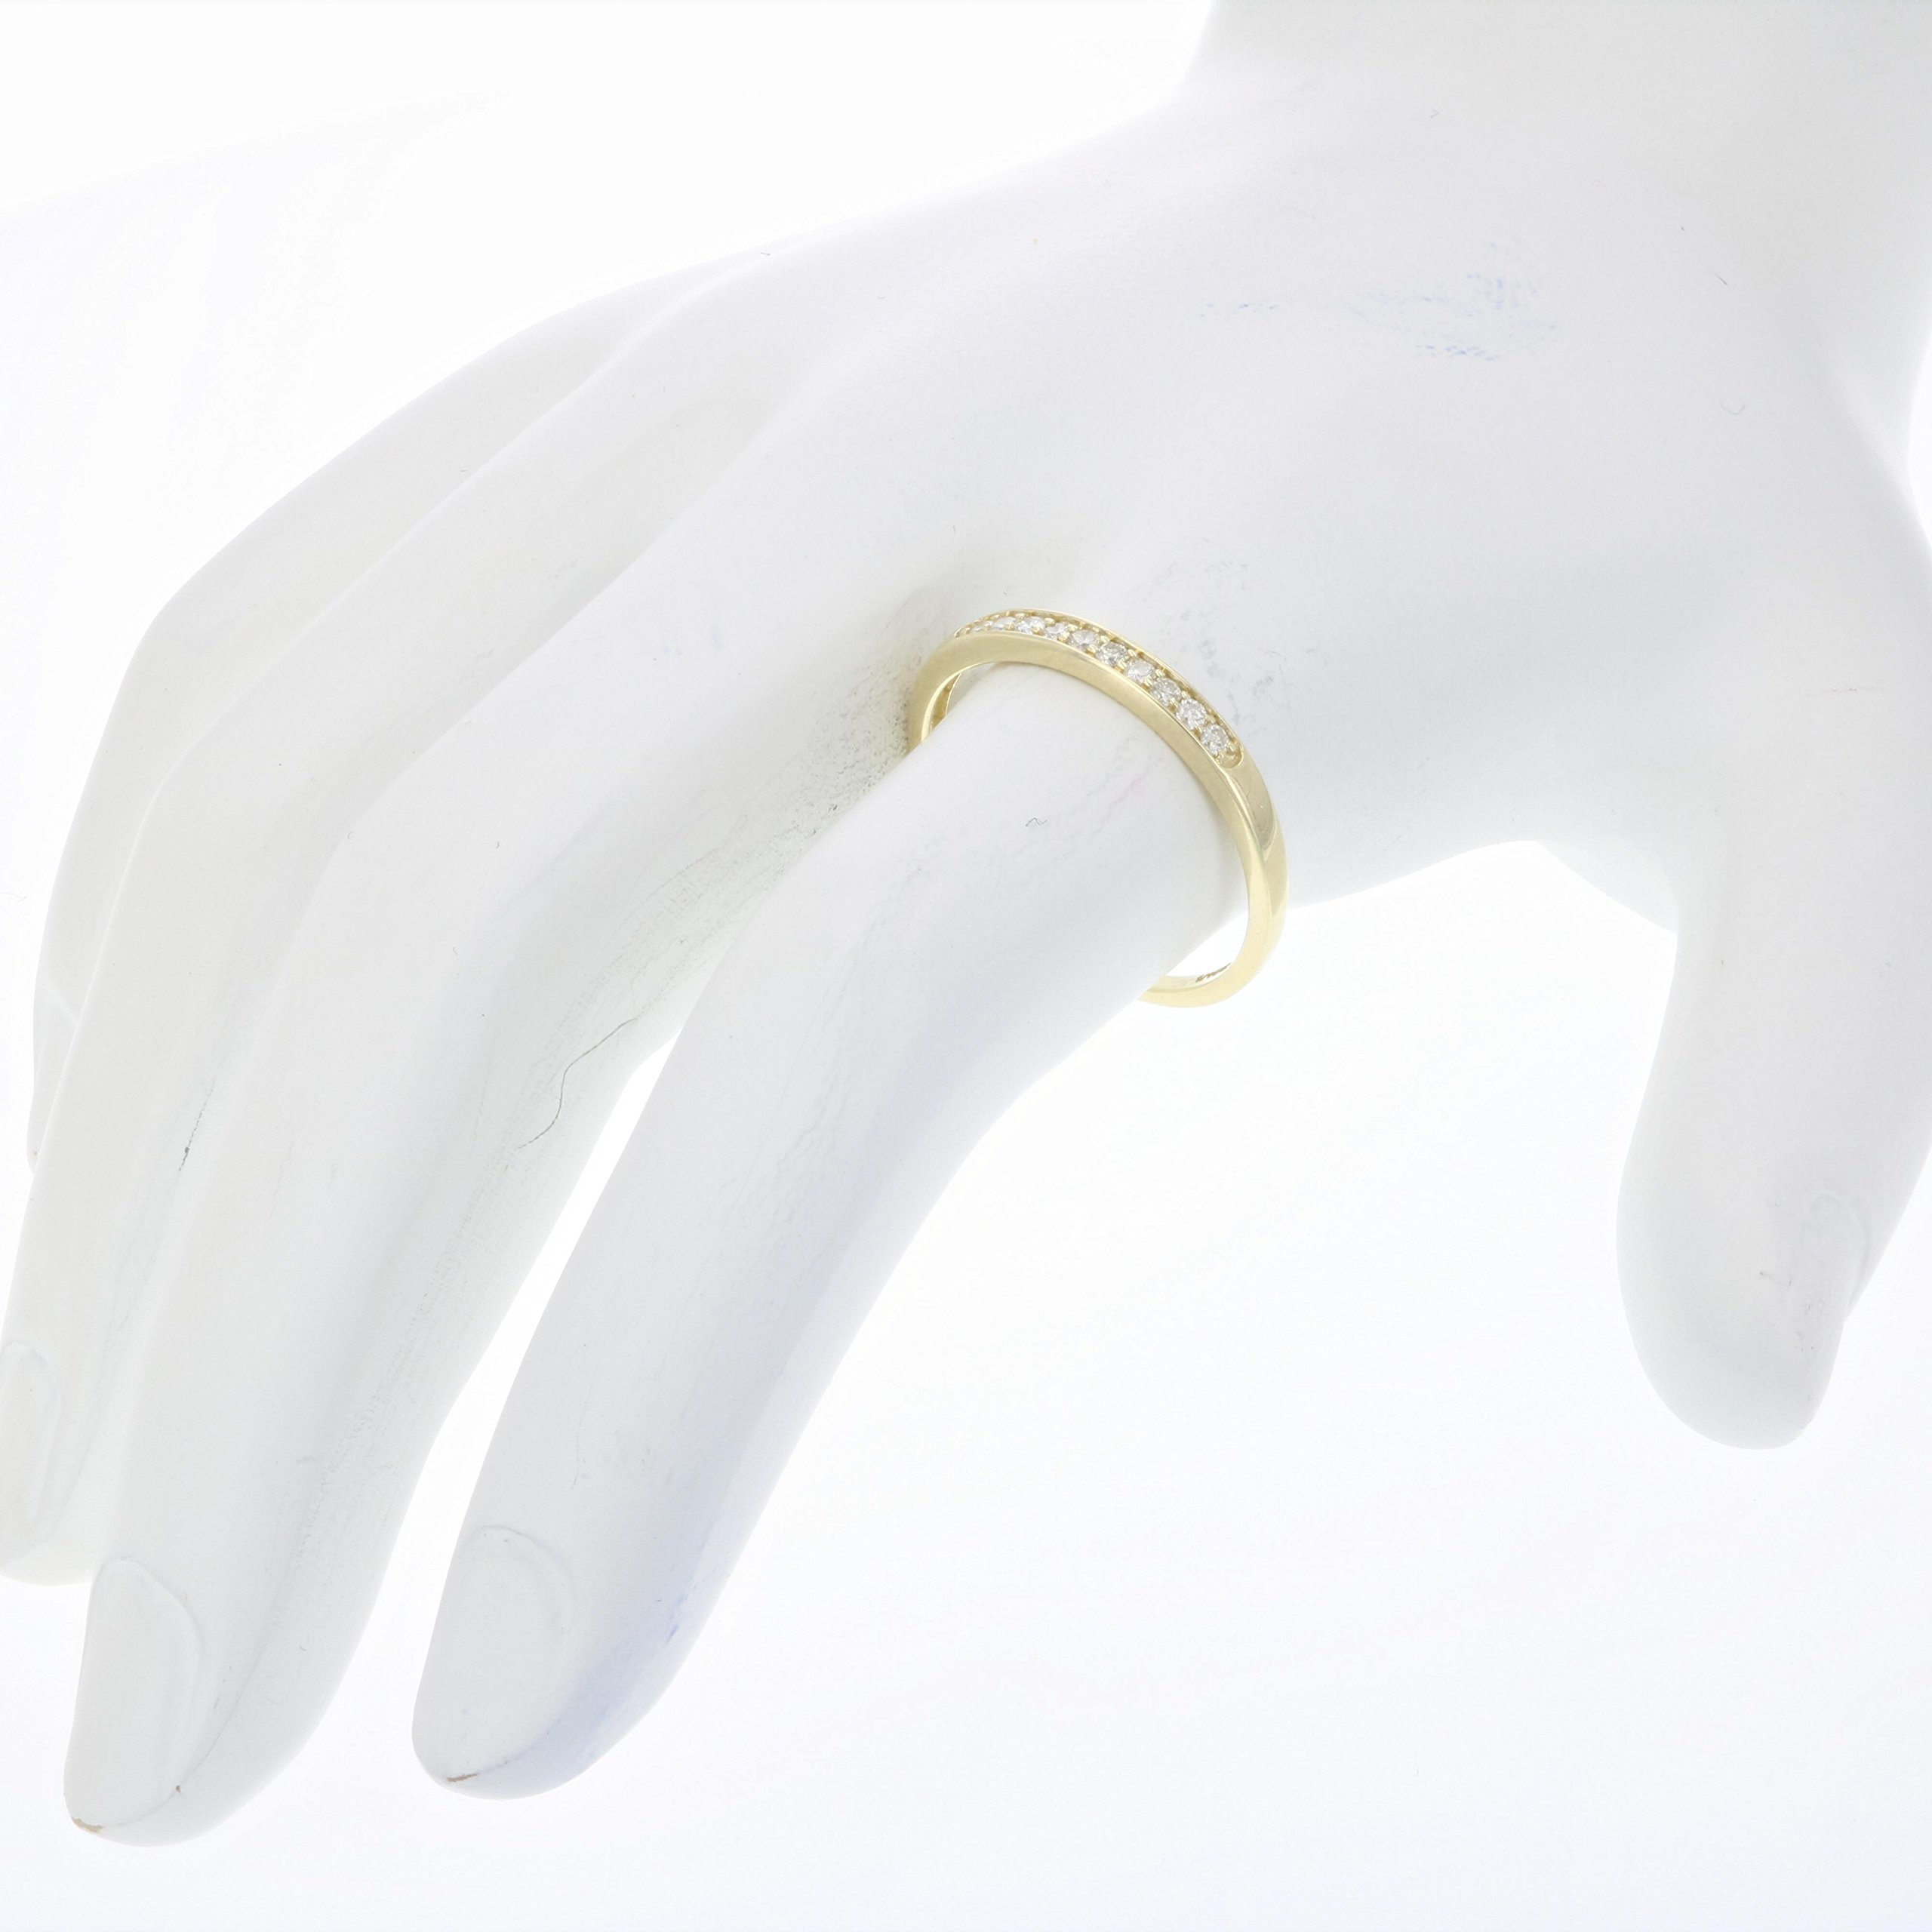 1/10 ctw Petite Diamond Wedding Band in 10K Yellow Gold In Size 9.5 by Vir Jewels (Image #3)